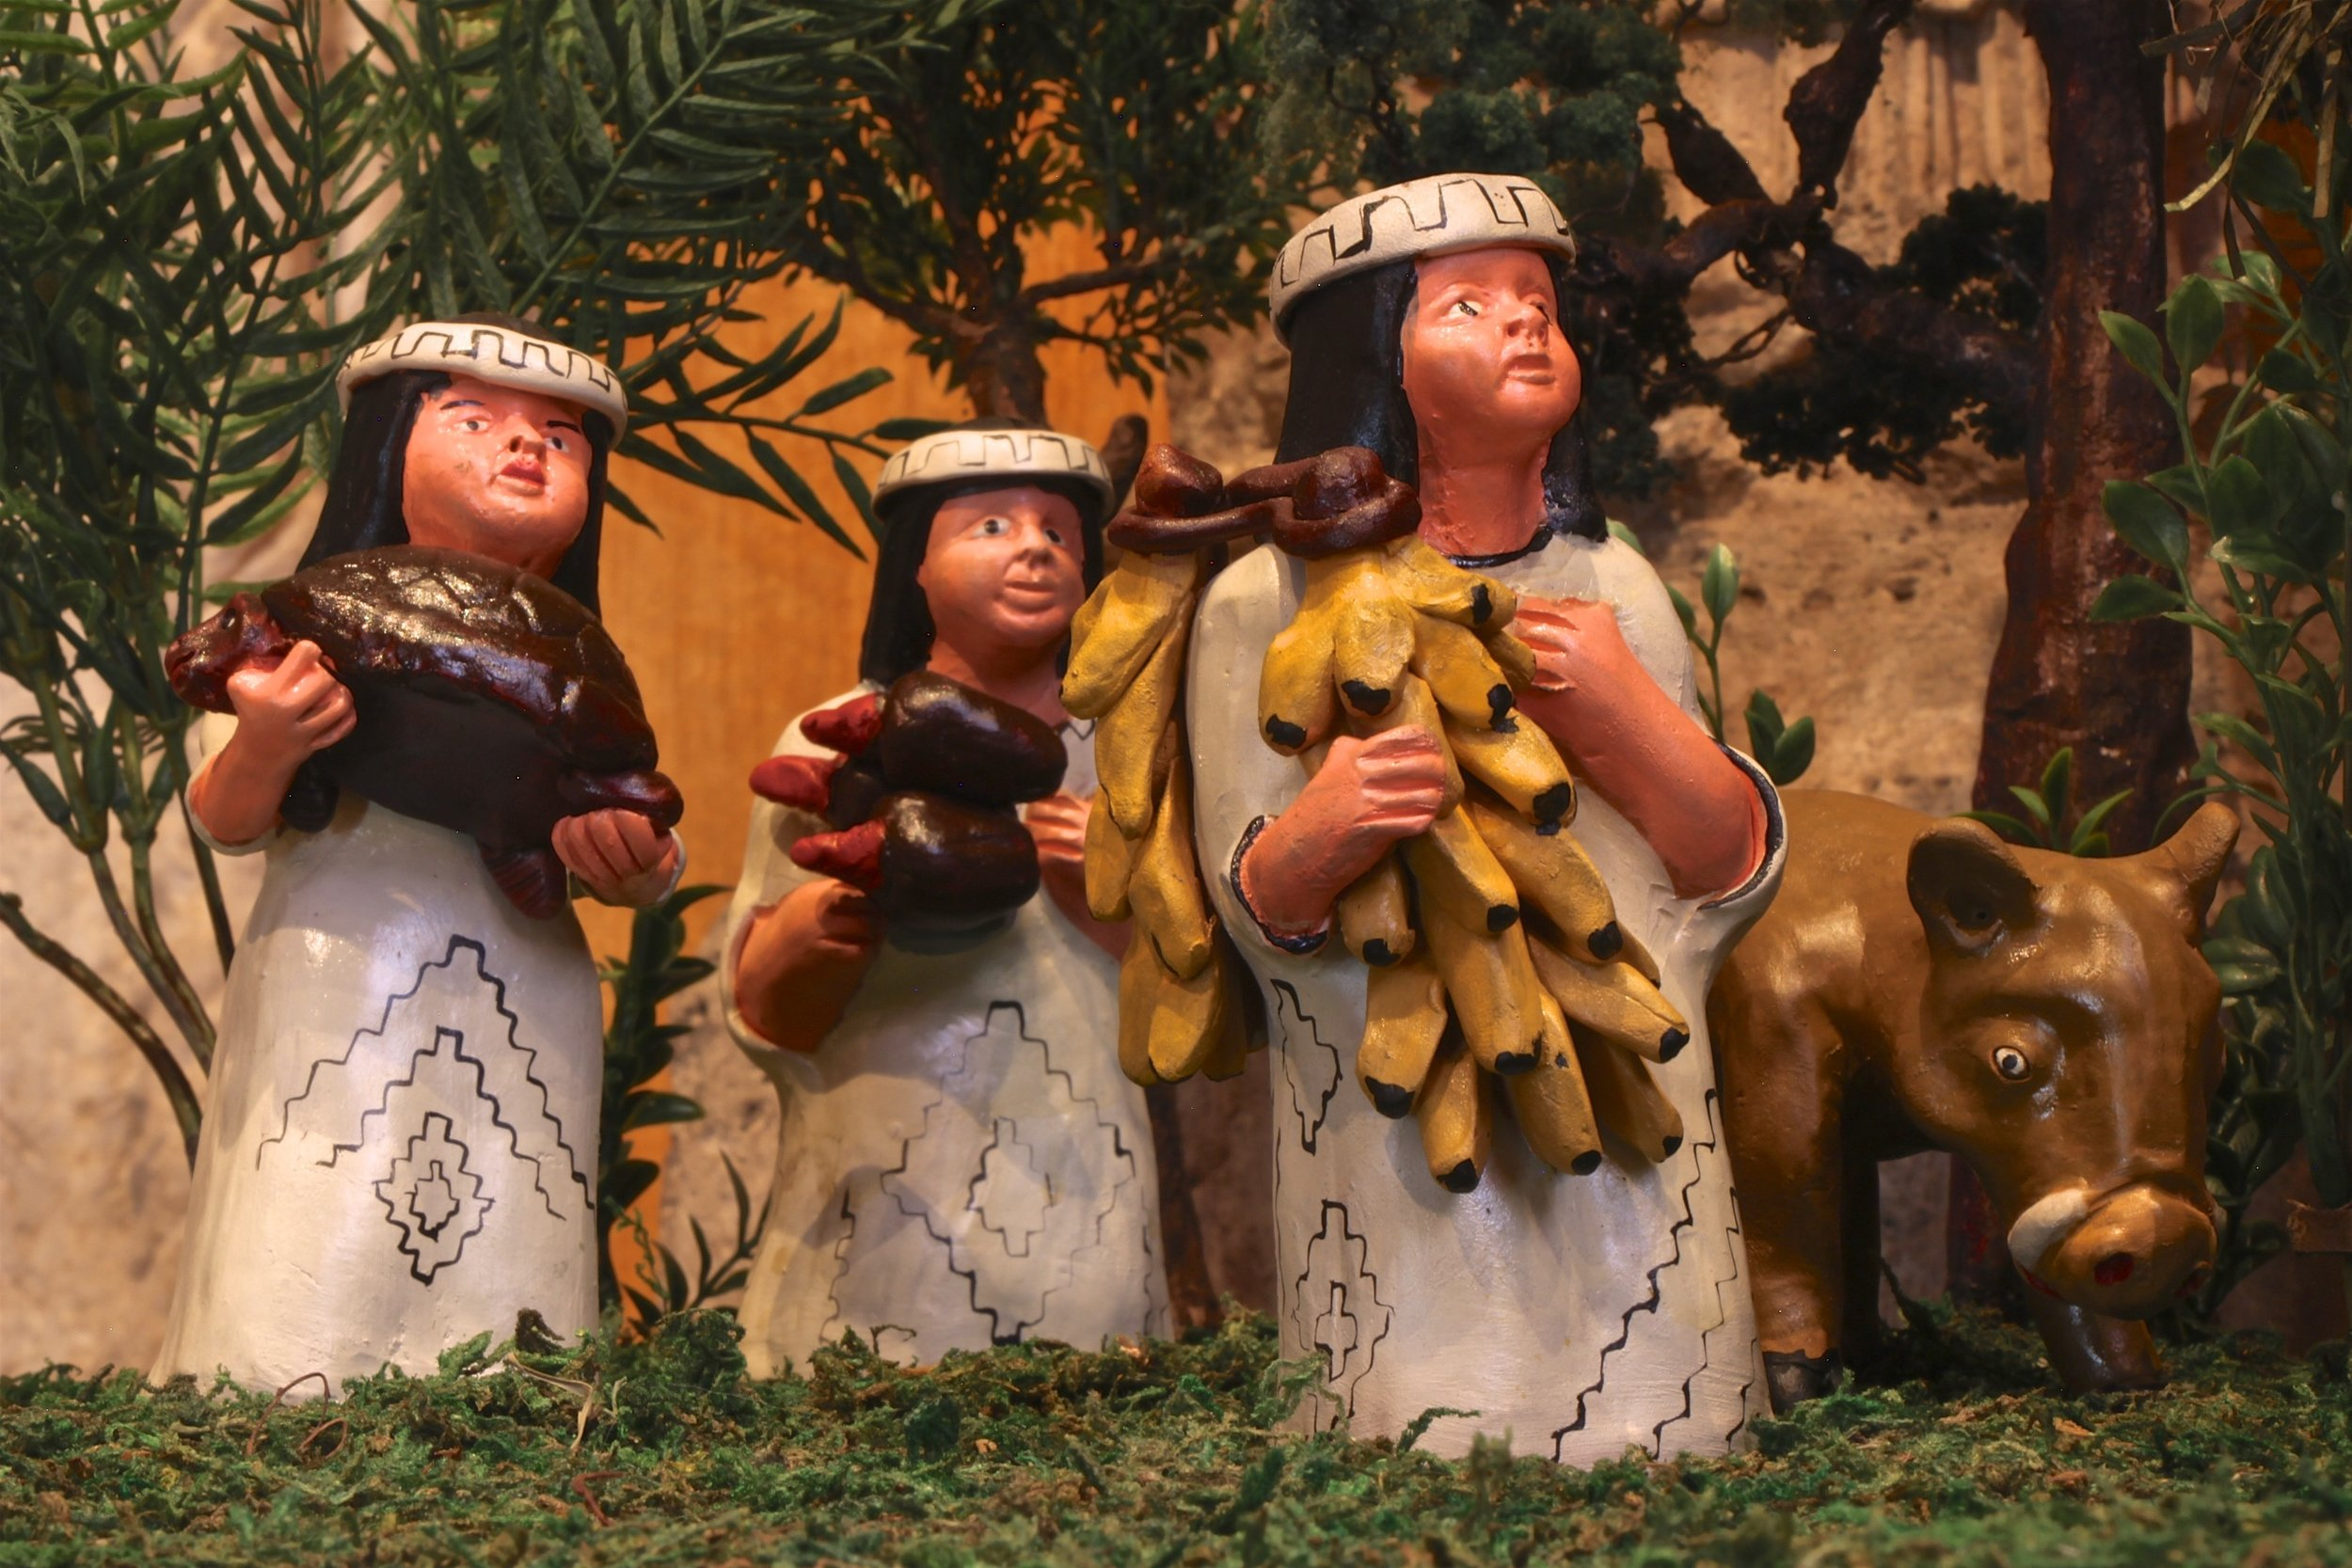 Figure 4: This Nativity from Peru, made by the Mamani family, depicts the figures as Shipibo, an indigenous people along the Ucayali River. The Magi bring gifts from the rain forest, including a bunch of bananas, cacao bean pods, and a turtle. A wild boar and a tapir have taken the place of the traditional ox and donkey. The intricate geometric designs on the clothing of the figures are inspired by those found on traditional Shipibo textiles and pottery. Collection of Glencairn Museum.